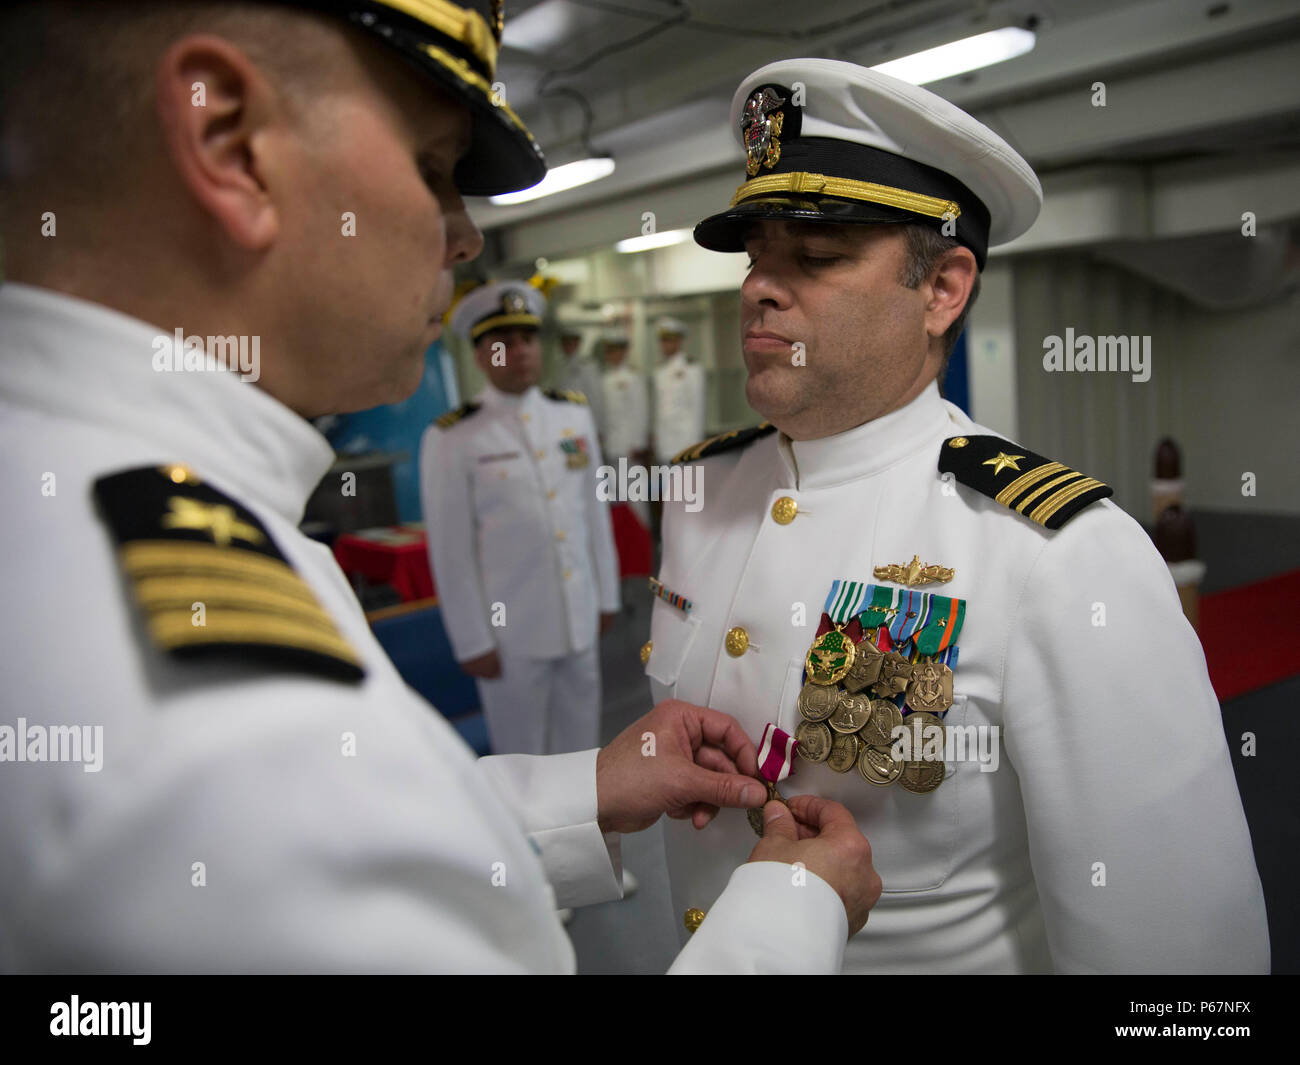 NEWPORT NEWS, Va. (May 13, 2016) --Cmdr. Allan Feenstra, chief engineer, Pre-Commissioning Unit Gerald R. Ford (CVN 78) presents Lt. Cmdr. Michael Stone with a meritorious service medal during a retirement ceremony in the ship's forecastle. Ford is the first of a new class of aircraft carriers currently under construction by Huntington Ingalls Industries Newport News Shipbuilding.  (U.S. Navy photo by Mass Communication Specialist Seaman Apprentice Connor Loessin/Released) - Stock Image